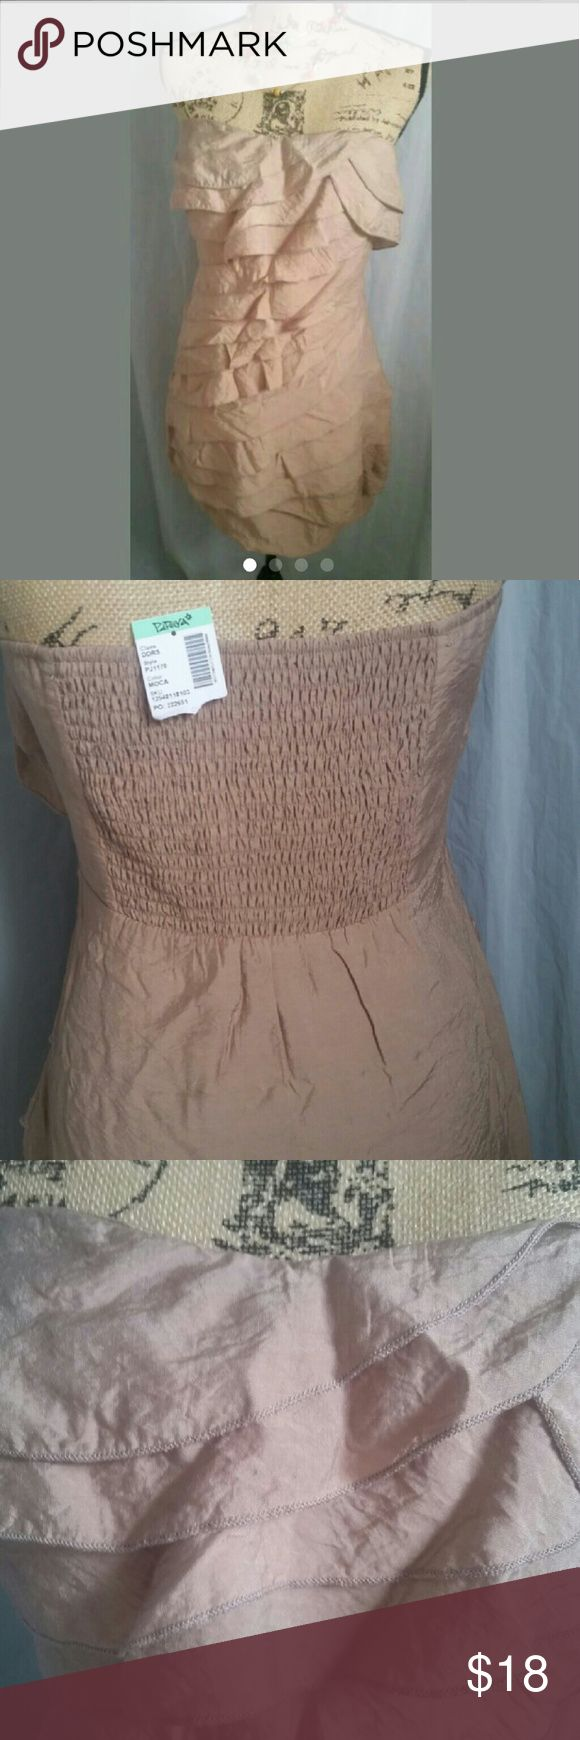 Silky Ruffled Strapless Minidress NWT So lovely and simple! Strapless minidress by Papaya in tan rayon.  Diagonal ruffles all along the front. Side zip.  Back has elastic for added support.  Size L.  So many possibilities for this neutral party dress! Brand new with tags! Papaya Dresses Mini